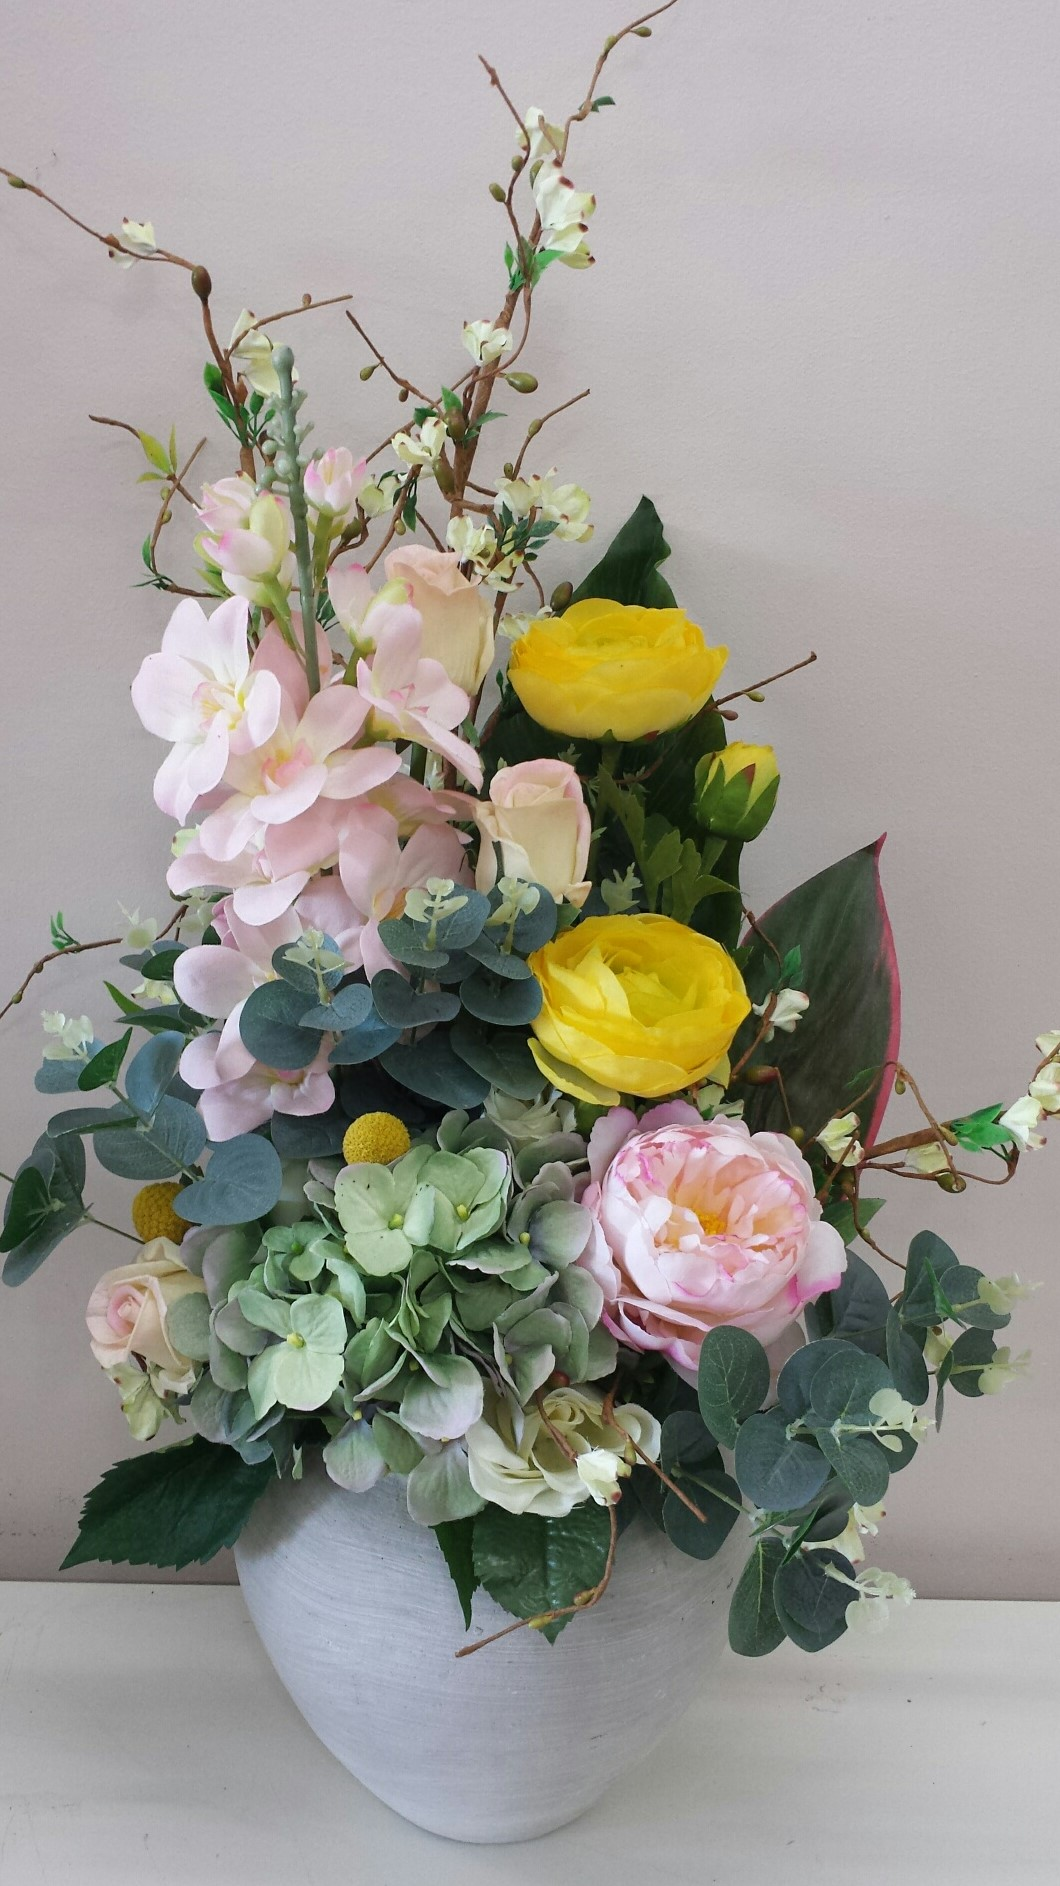 Sping blooms with billy buttons and blue gum